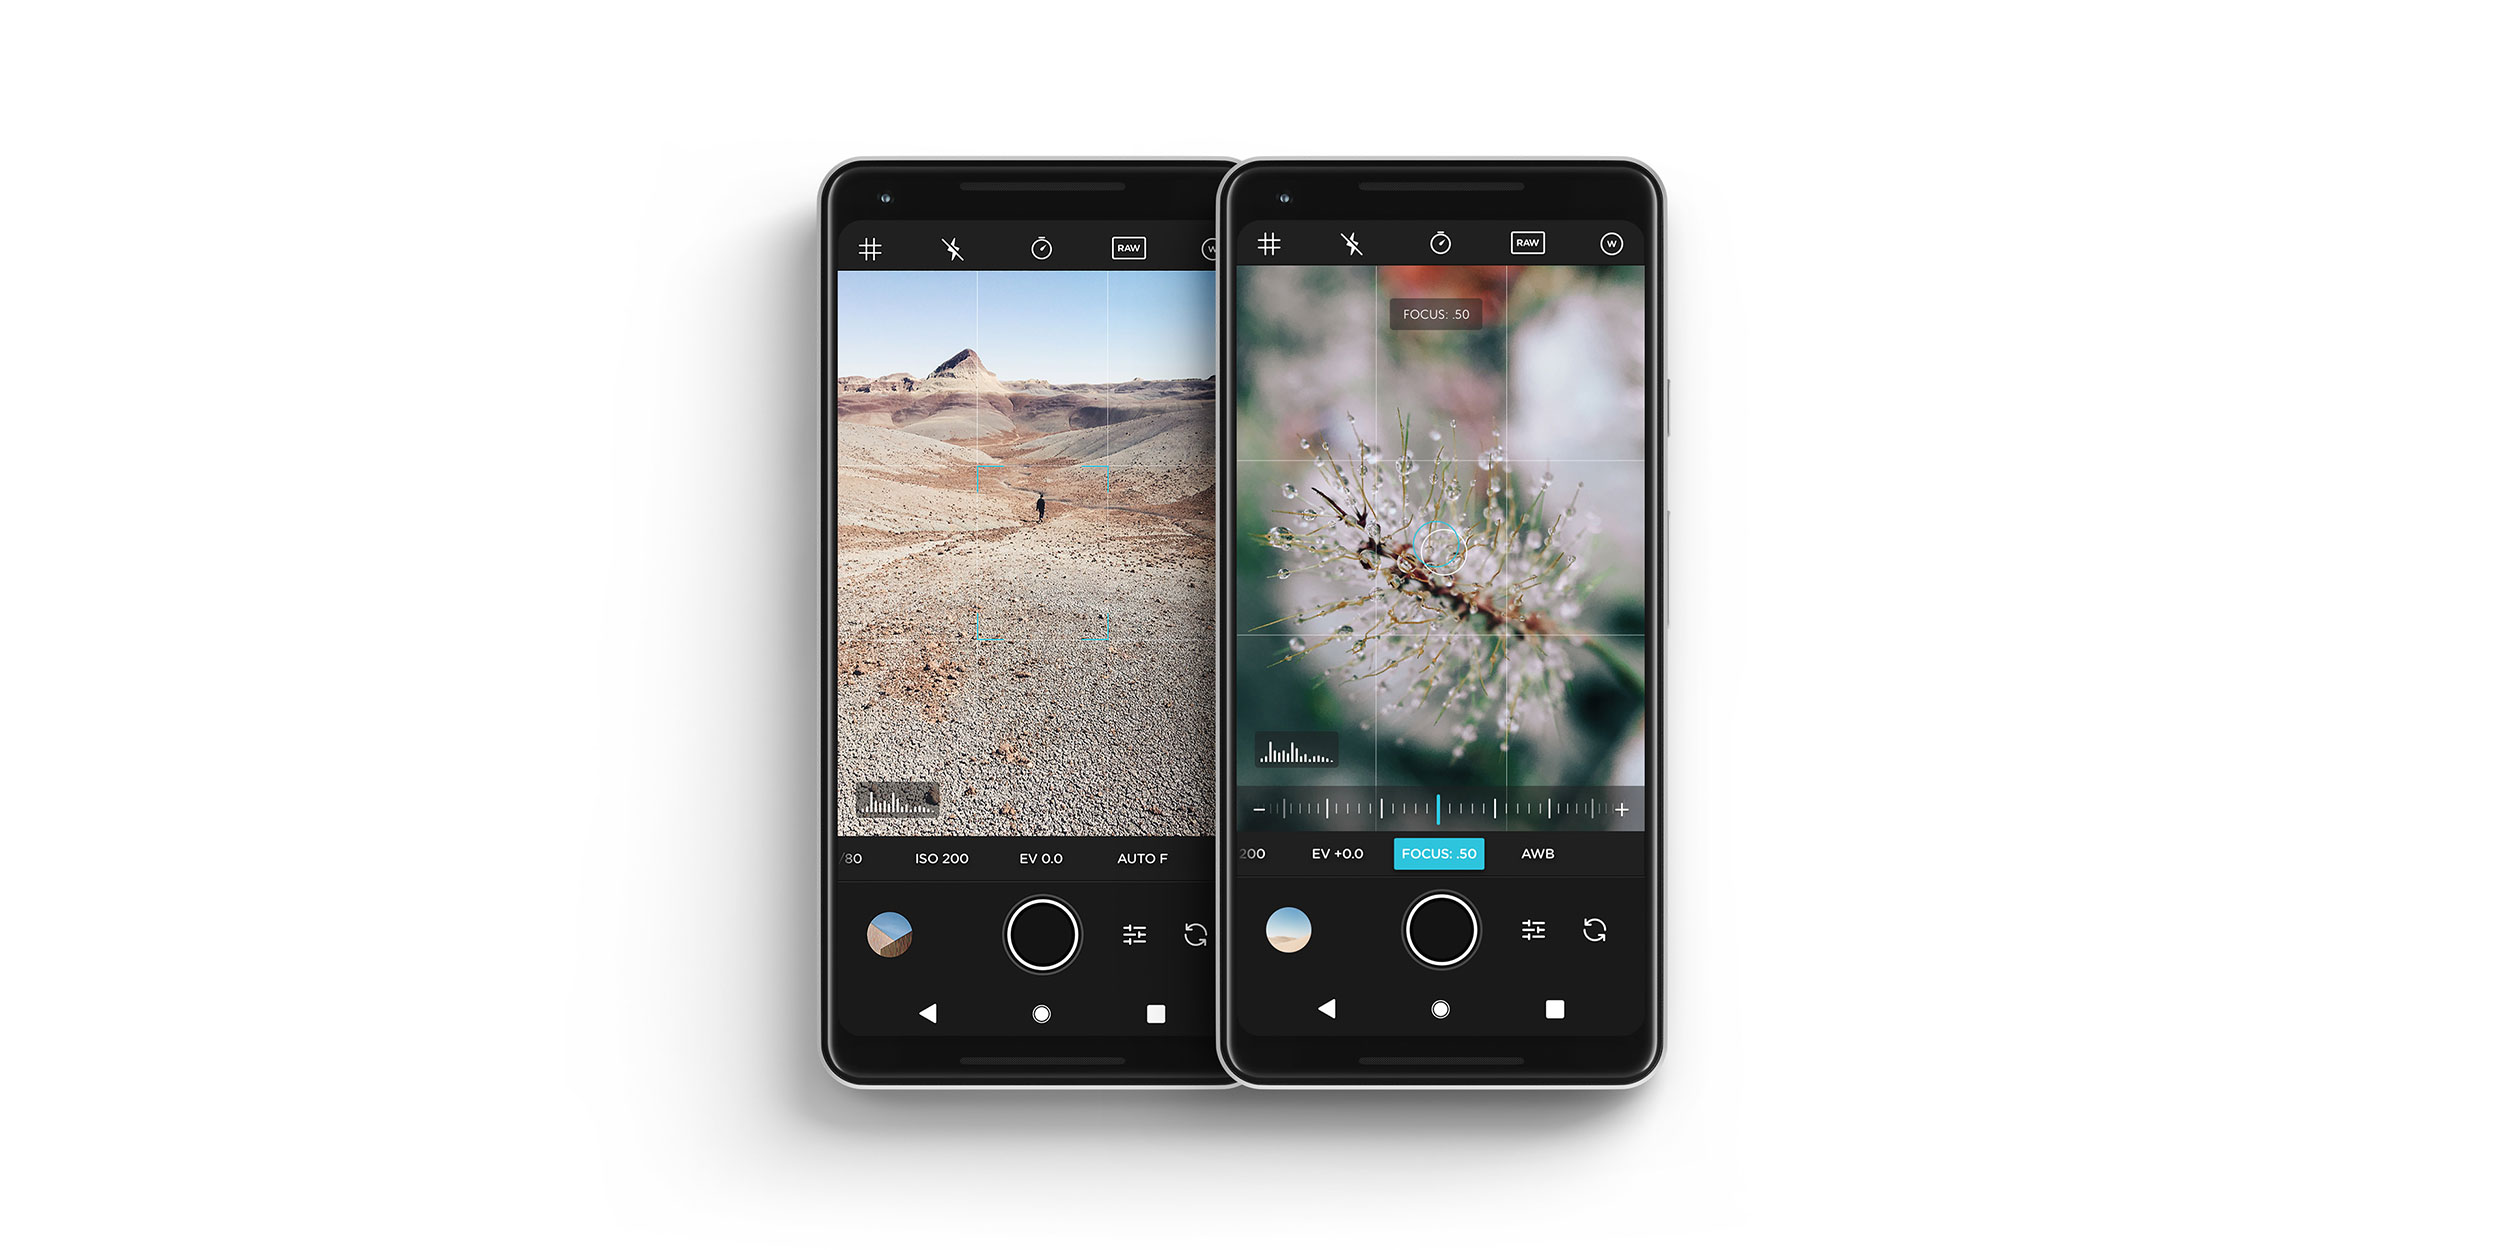 moment pro camera brings full manual camera controls to android rh 9to5google com Android 4.0 Android 4 1 Jelly Beaan